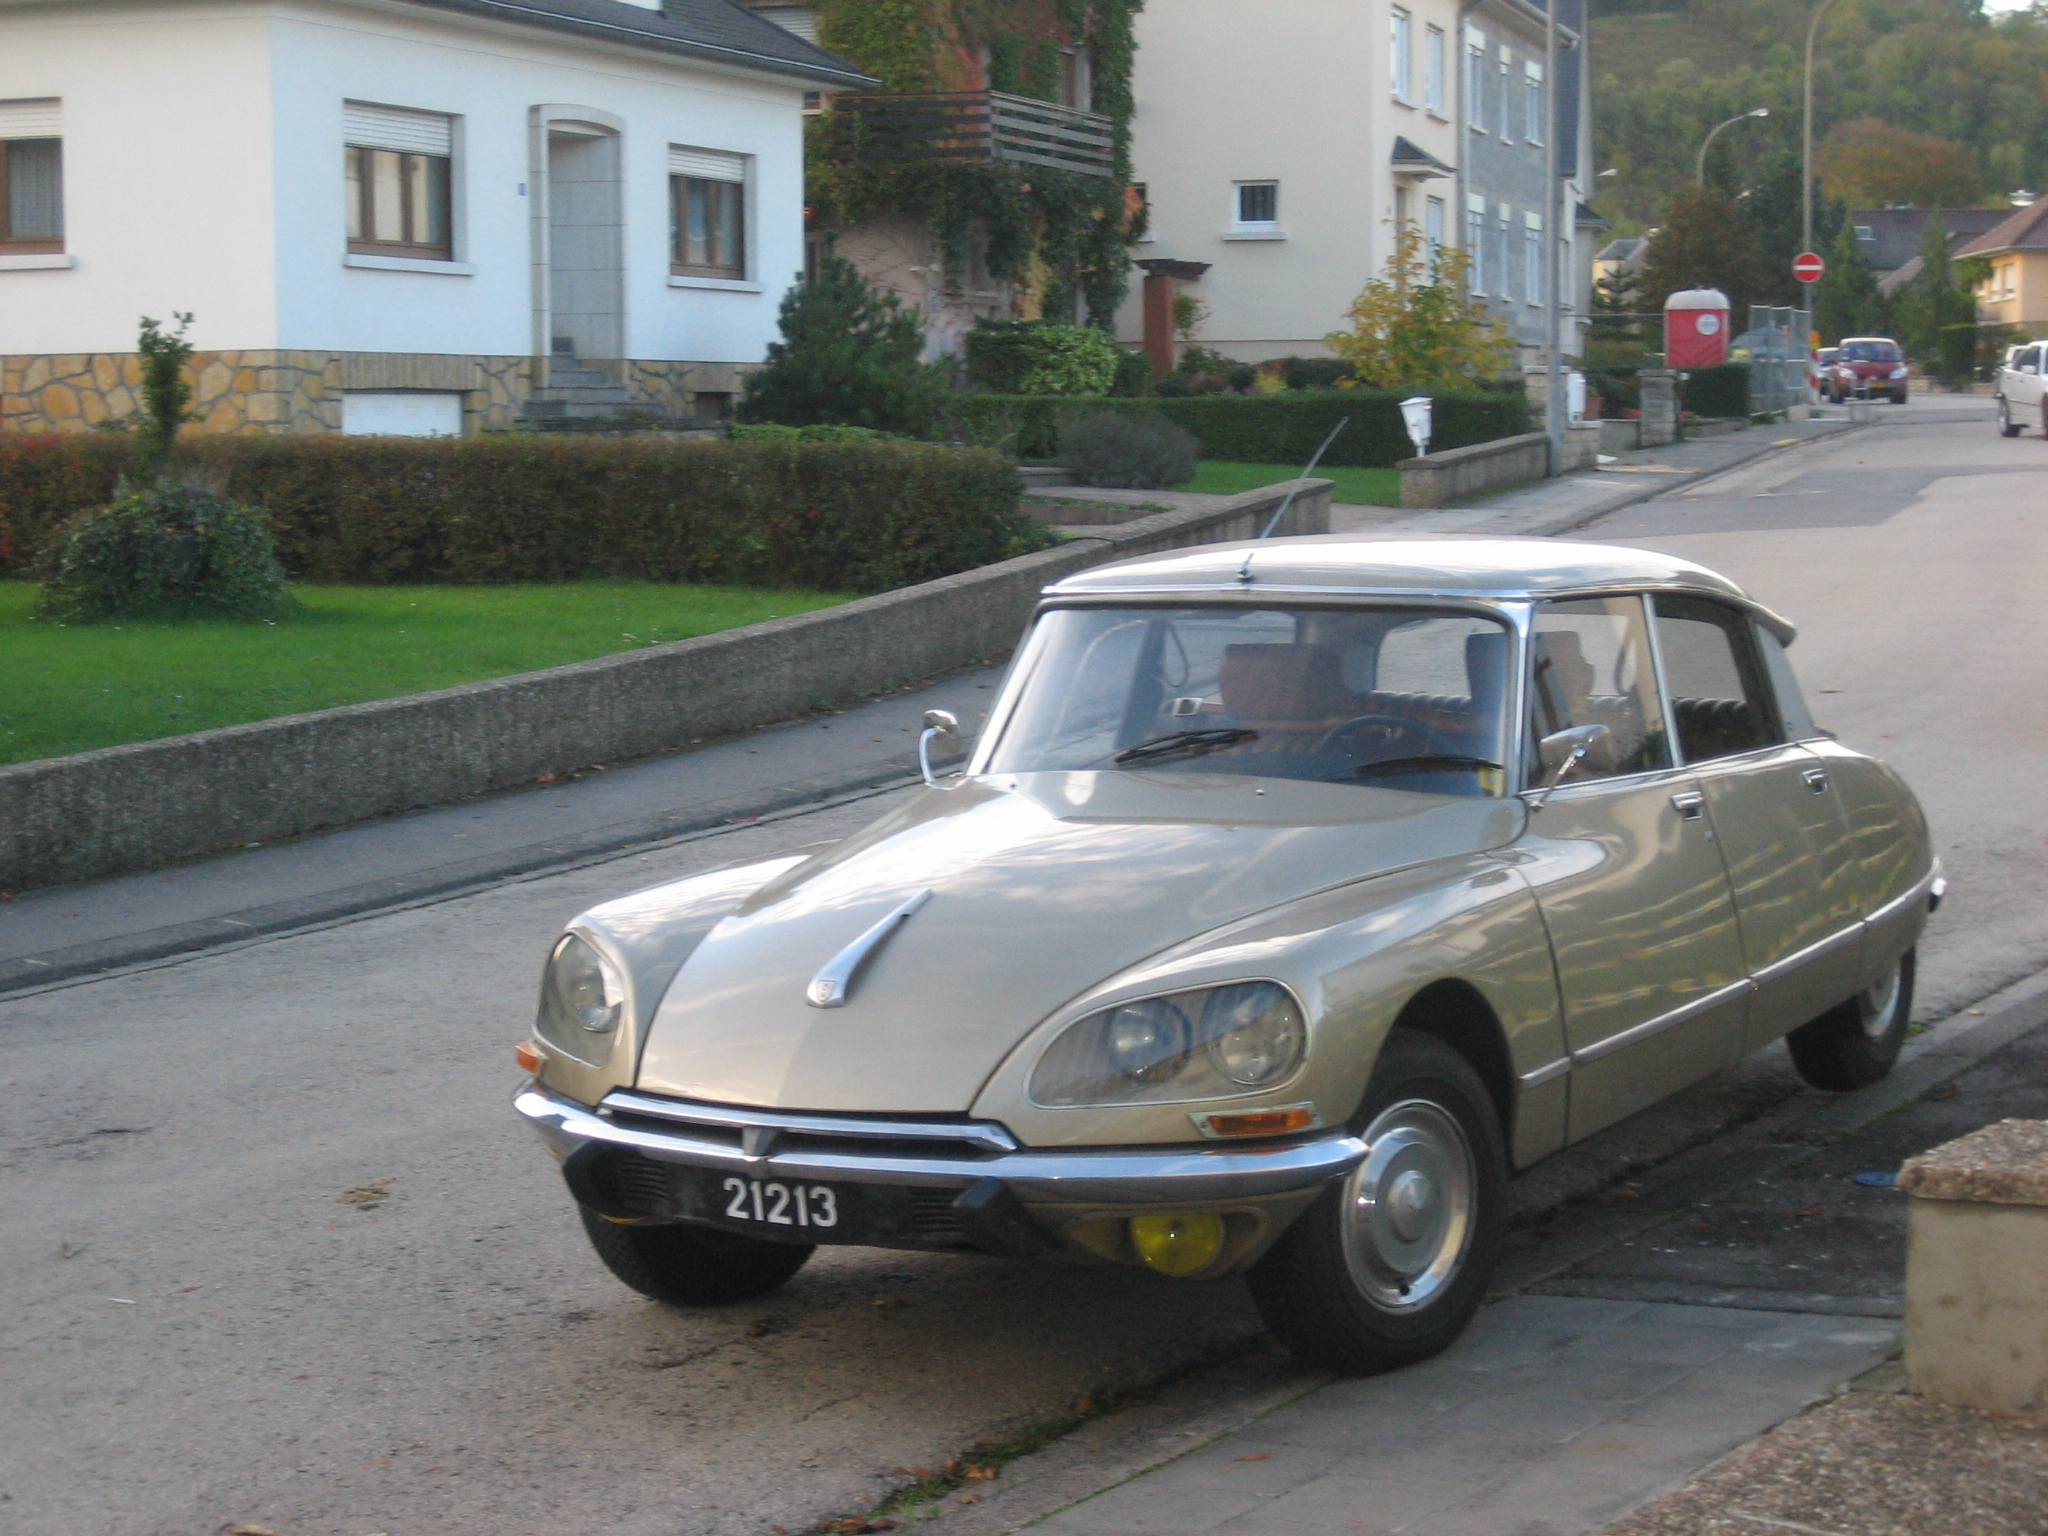 1972 citroen ds 21 image collections hd cars wallpaper 1972 citroen ds21 information and photos momentcar citroen ds21 1972 7 vanachro image collections vanachro Images